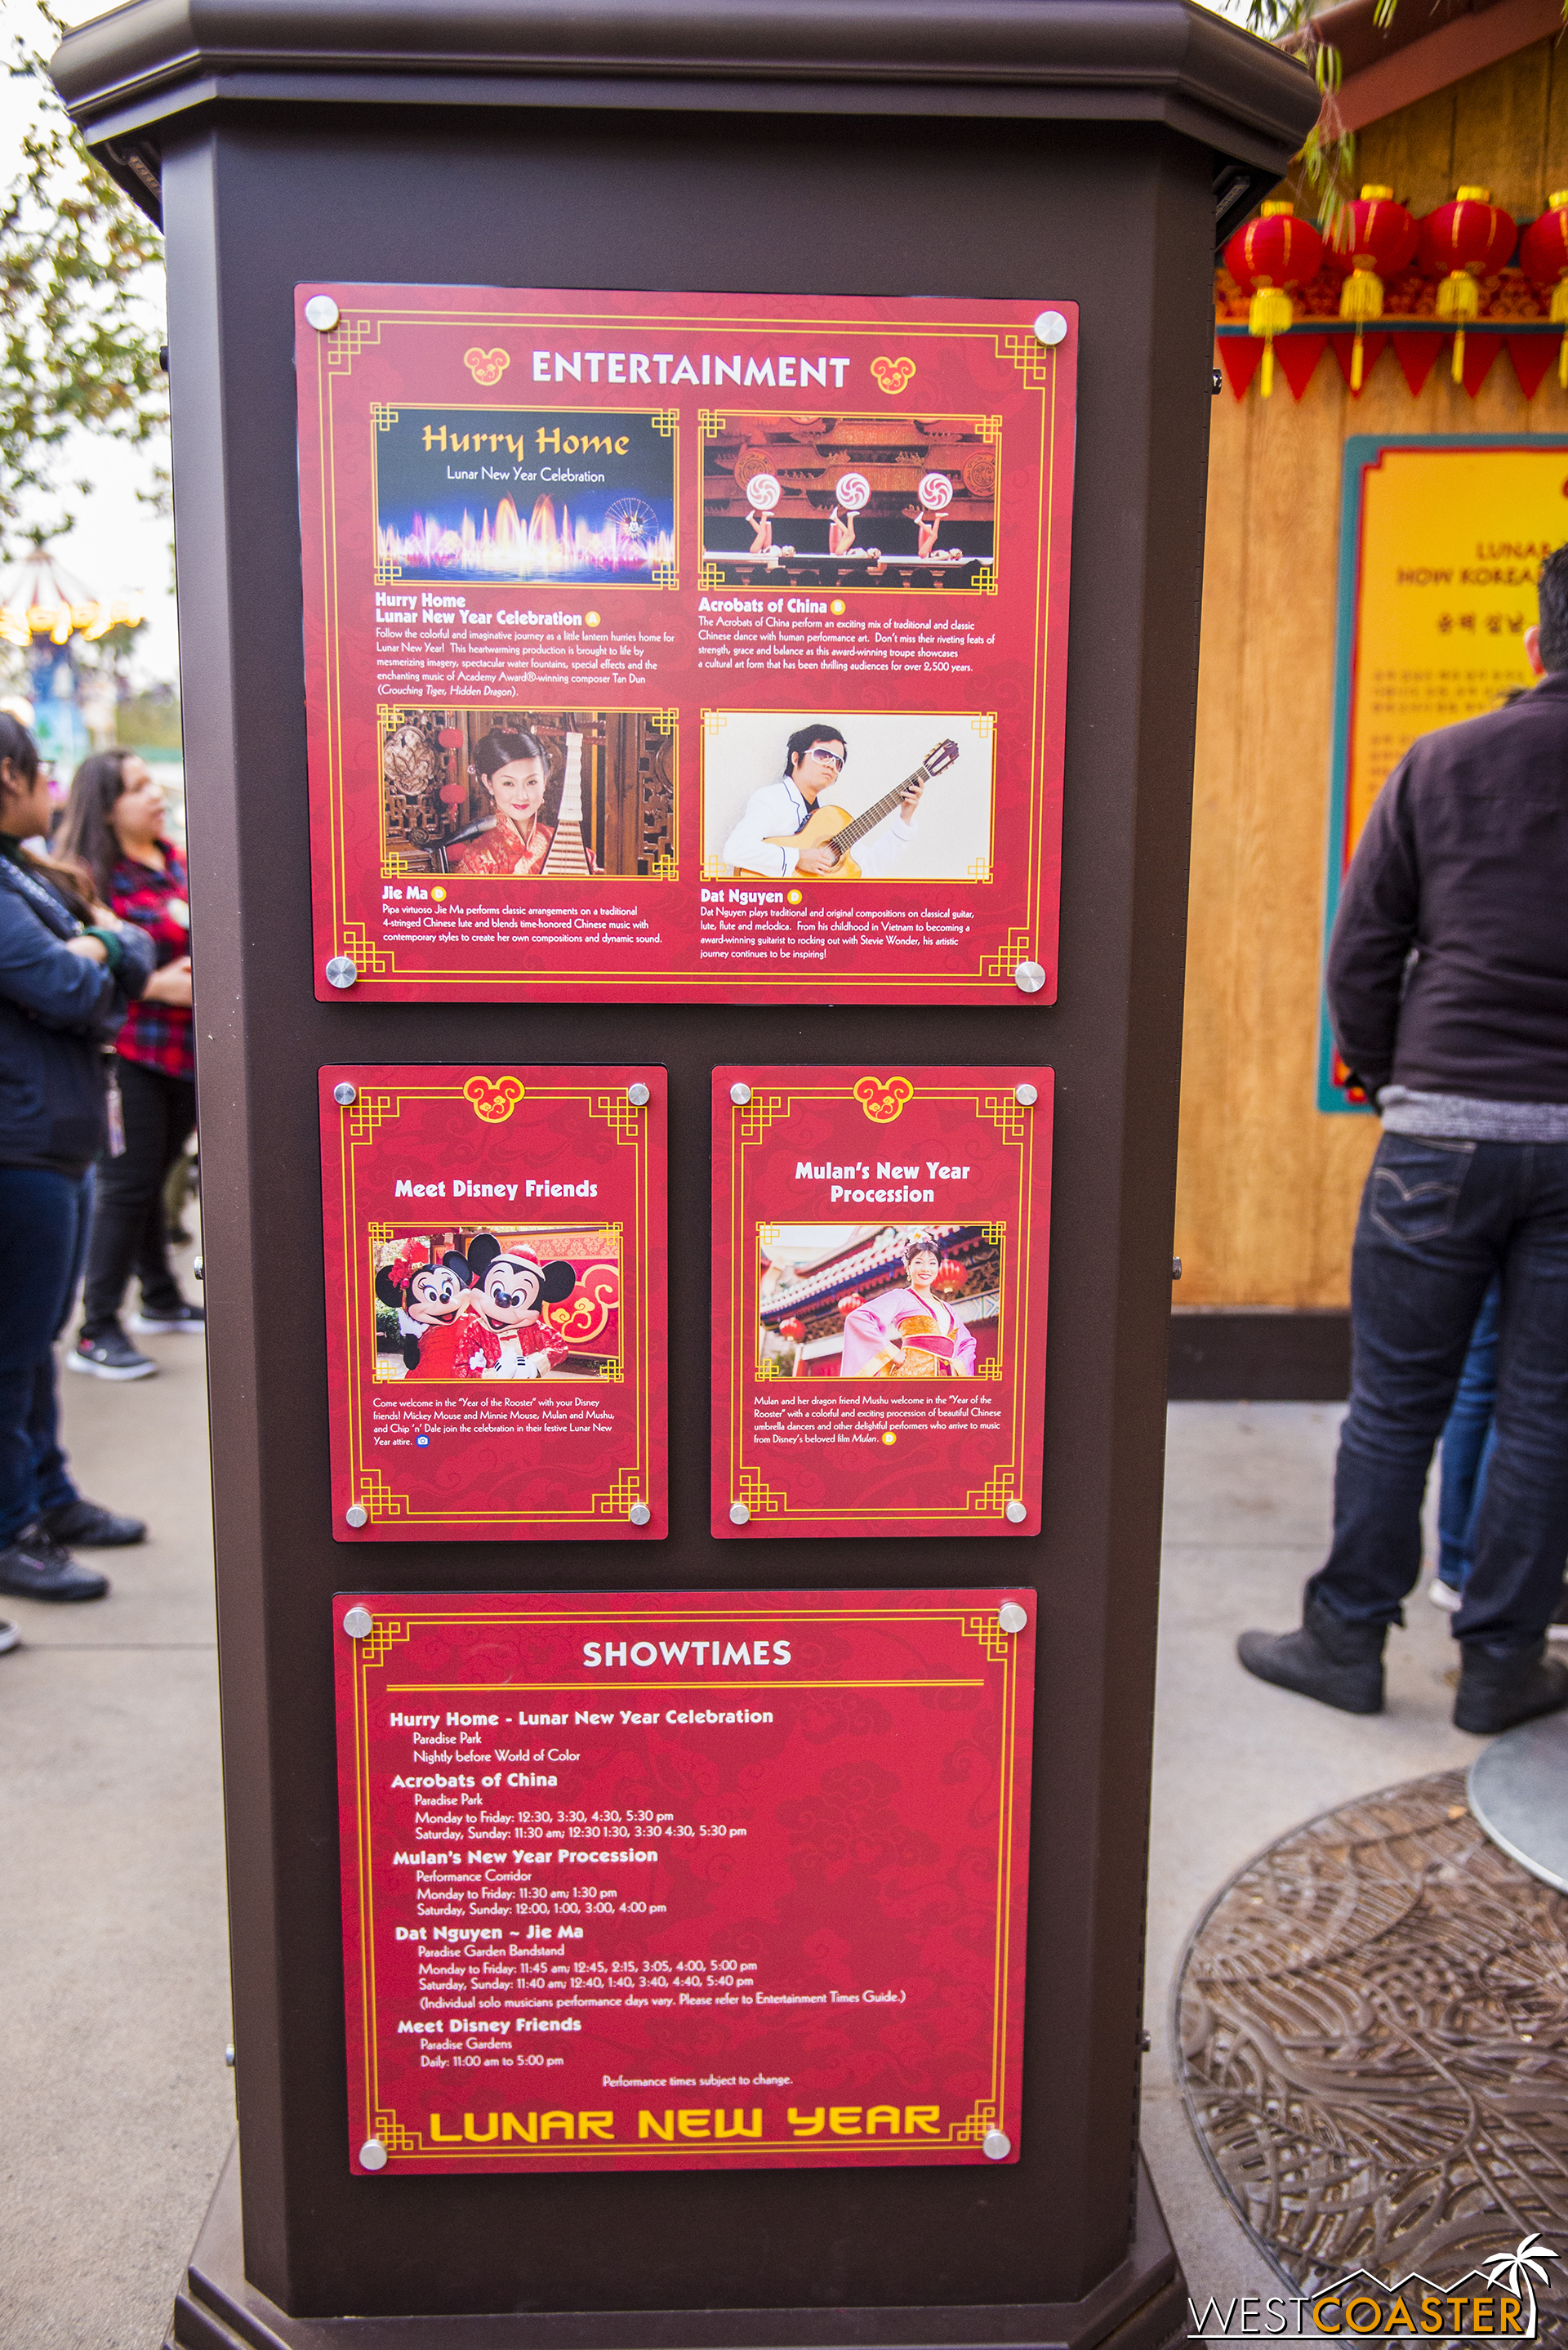 Descriptions of the entertainment can be found at every Lunar New Year Marketplace, adjacent to the food menu sides.